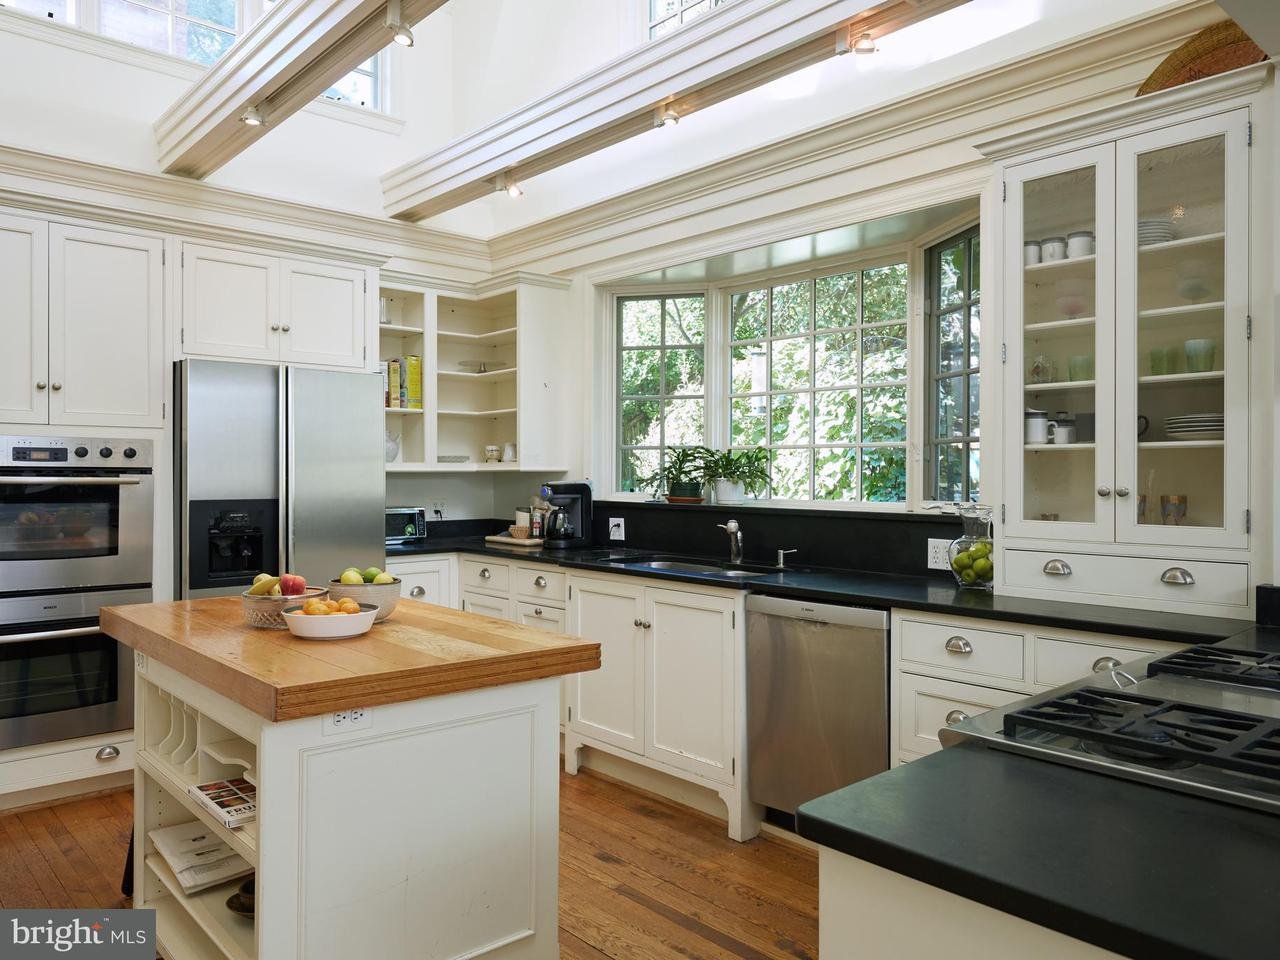 Single Family Home for Sale at 4930 30TH ST NW 4930 30TH ST NW Washington, District Of Columbia 20008 United States